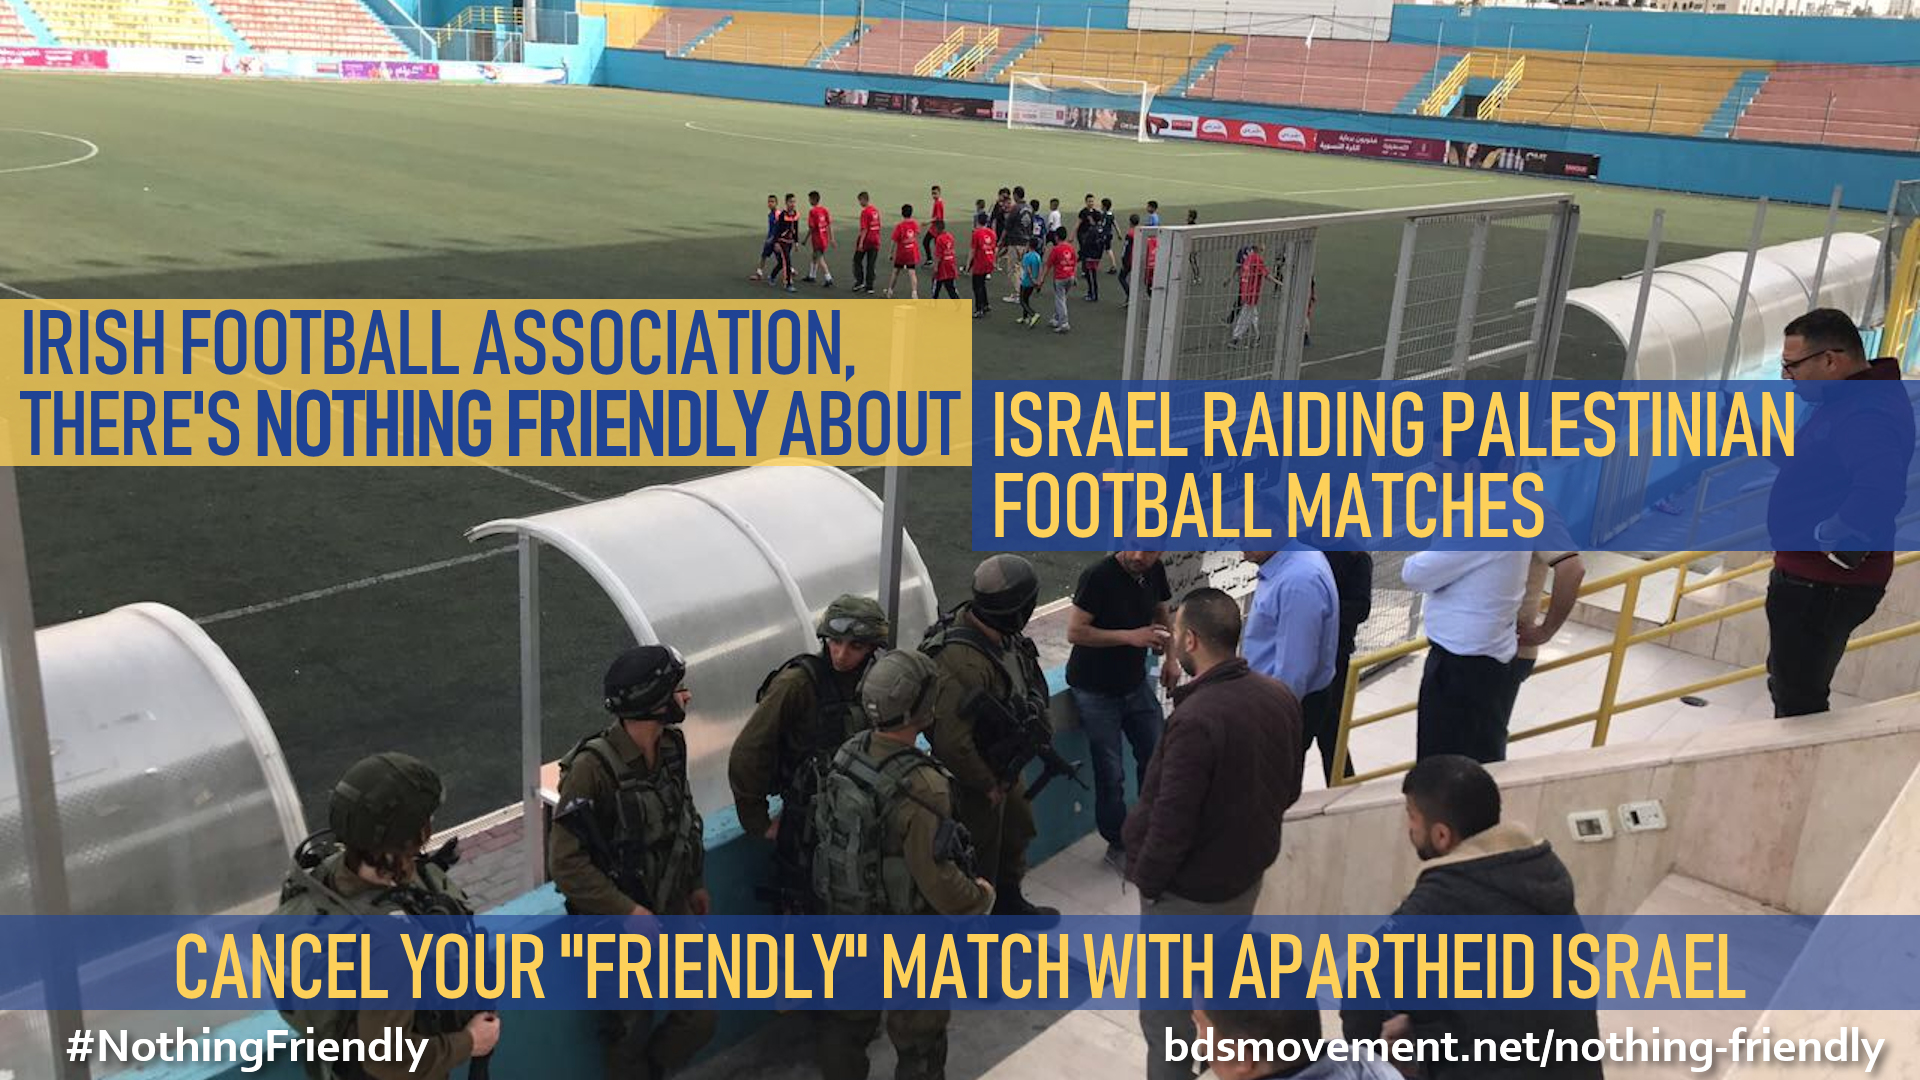 Irish Football Assoc, there's nothing friendly about raiding Palestinian football matches